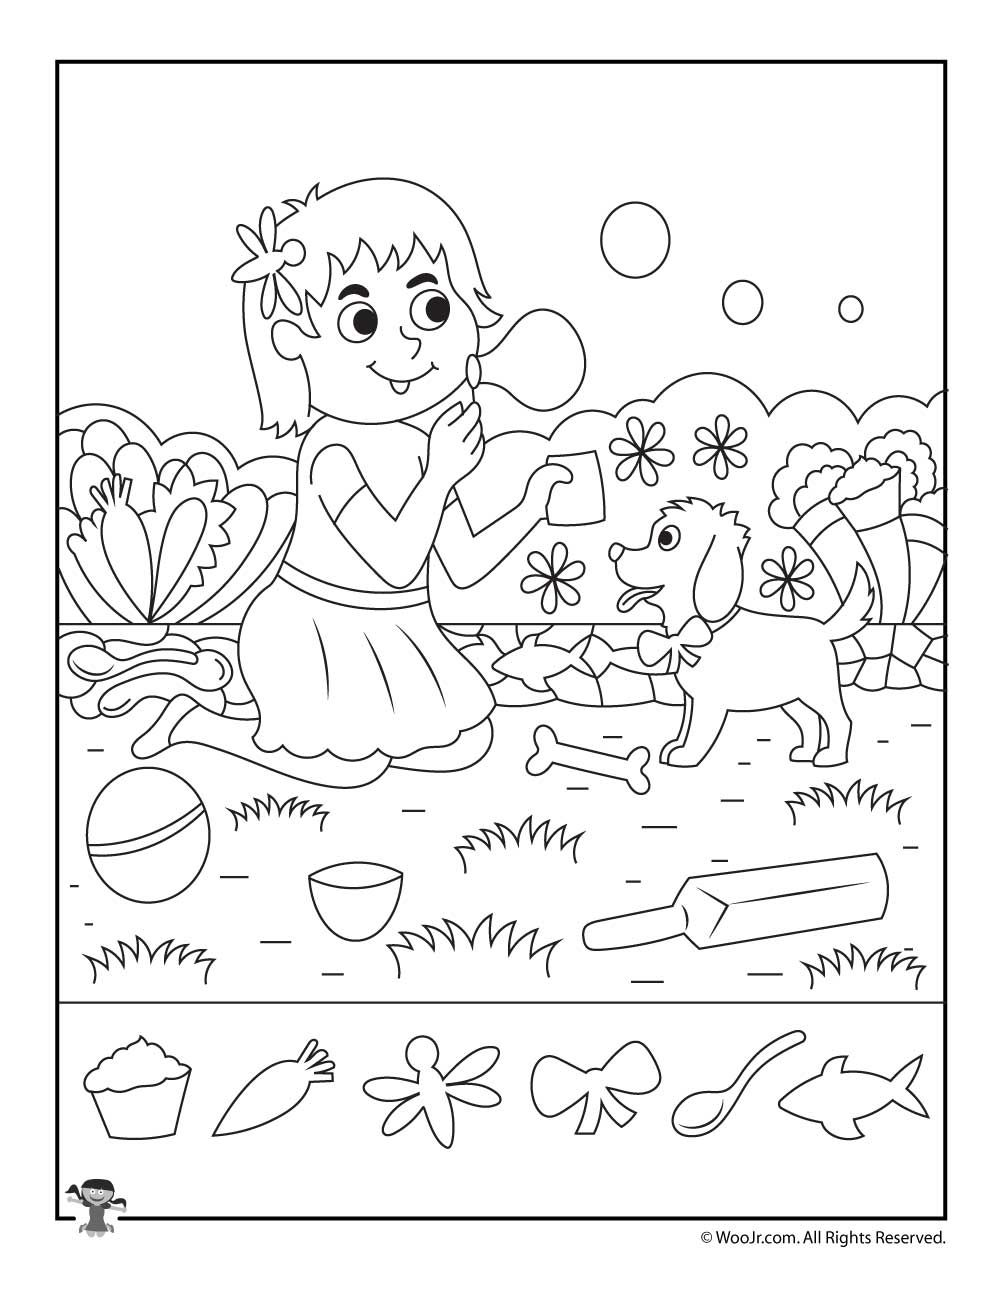 In The Park Hidden Picture Printable Woo Jr Kids Activities Hidden Pictures Hidden Pictures Printables Hidden Picture Puzzles [ 1294 x 1000 Pixel ]